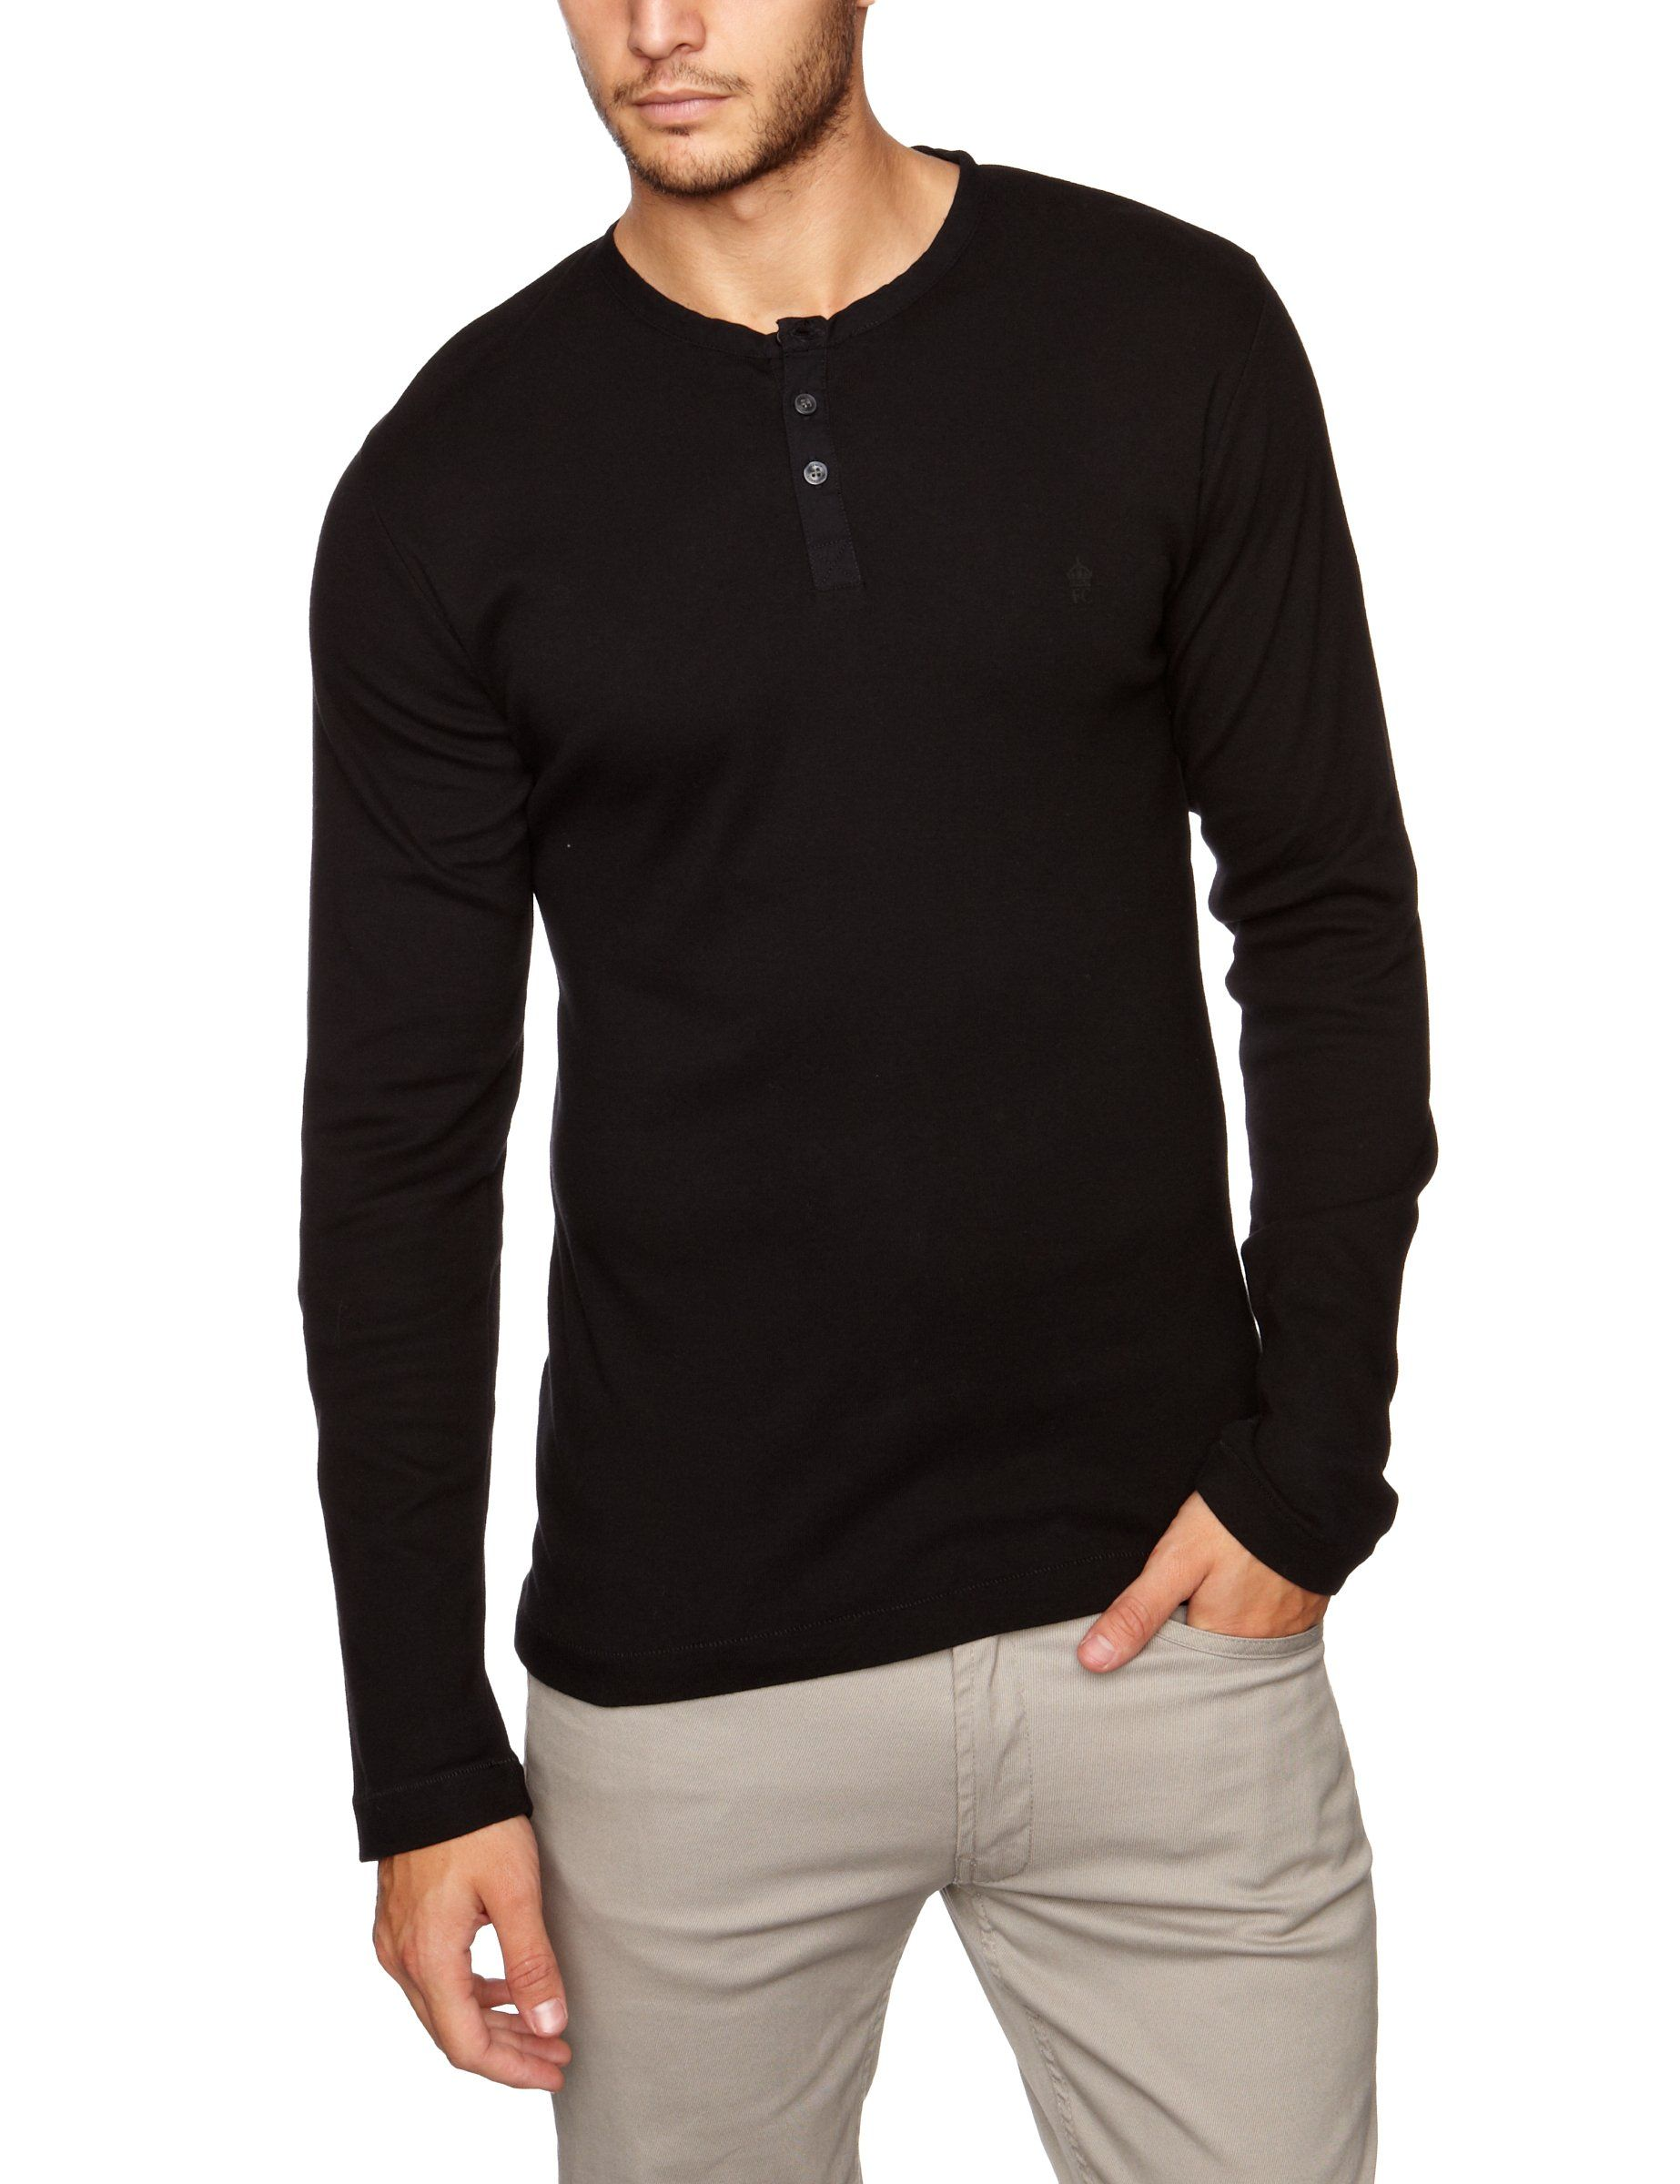 9935afe90a8f5 French Connection Men s Henleys Crew Neck Long Sleeve Tee